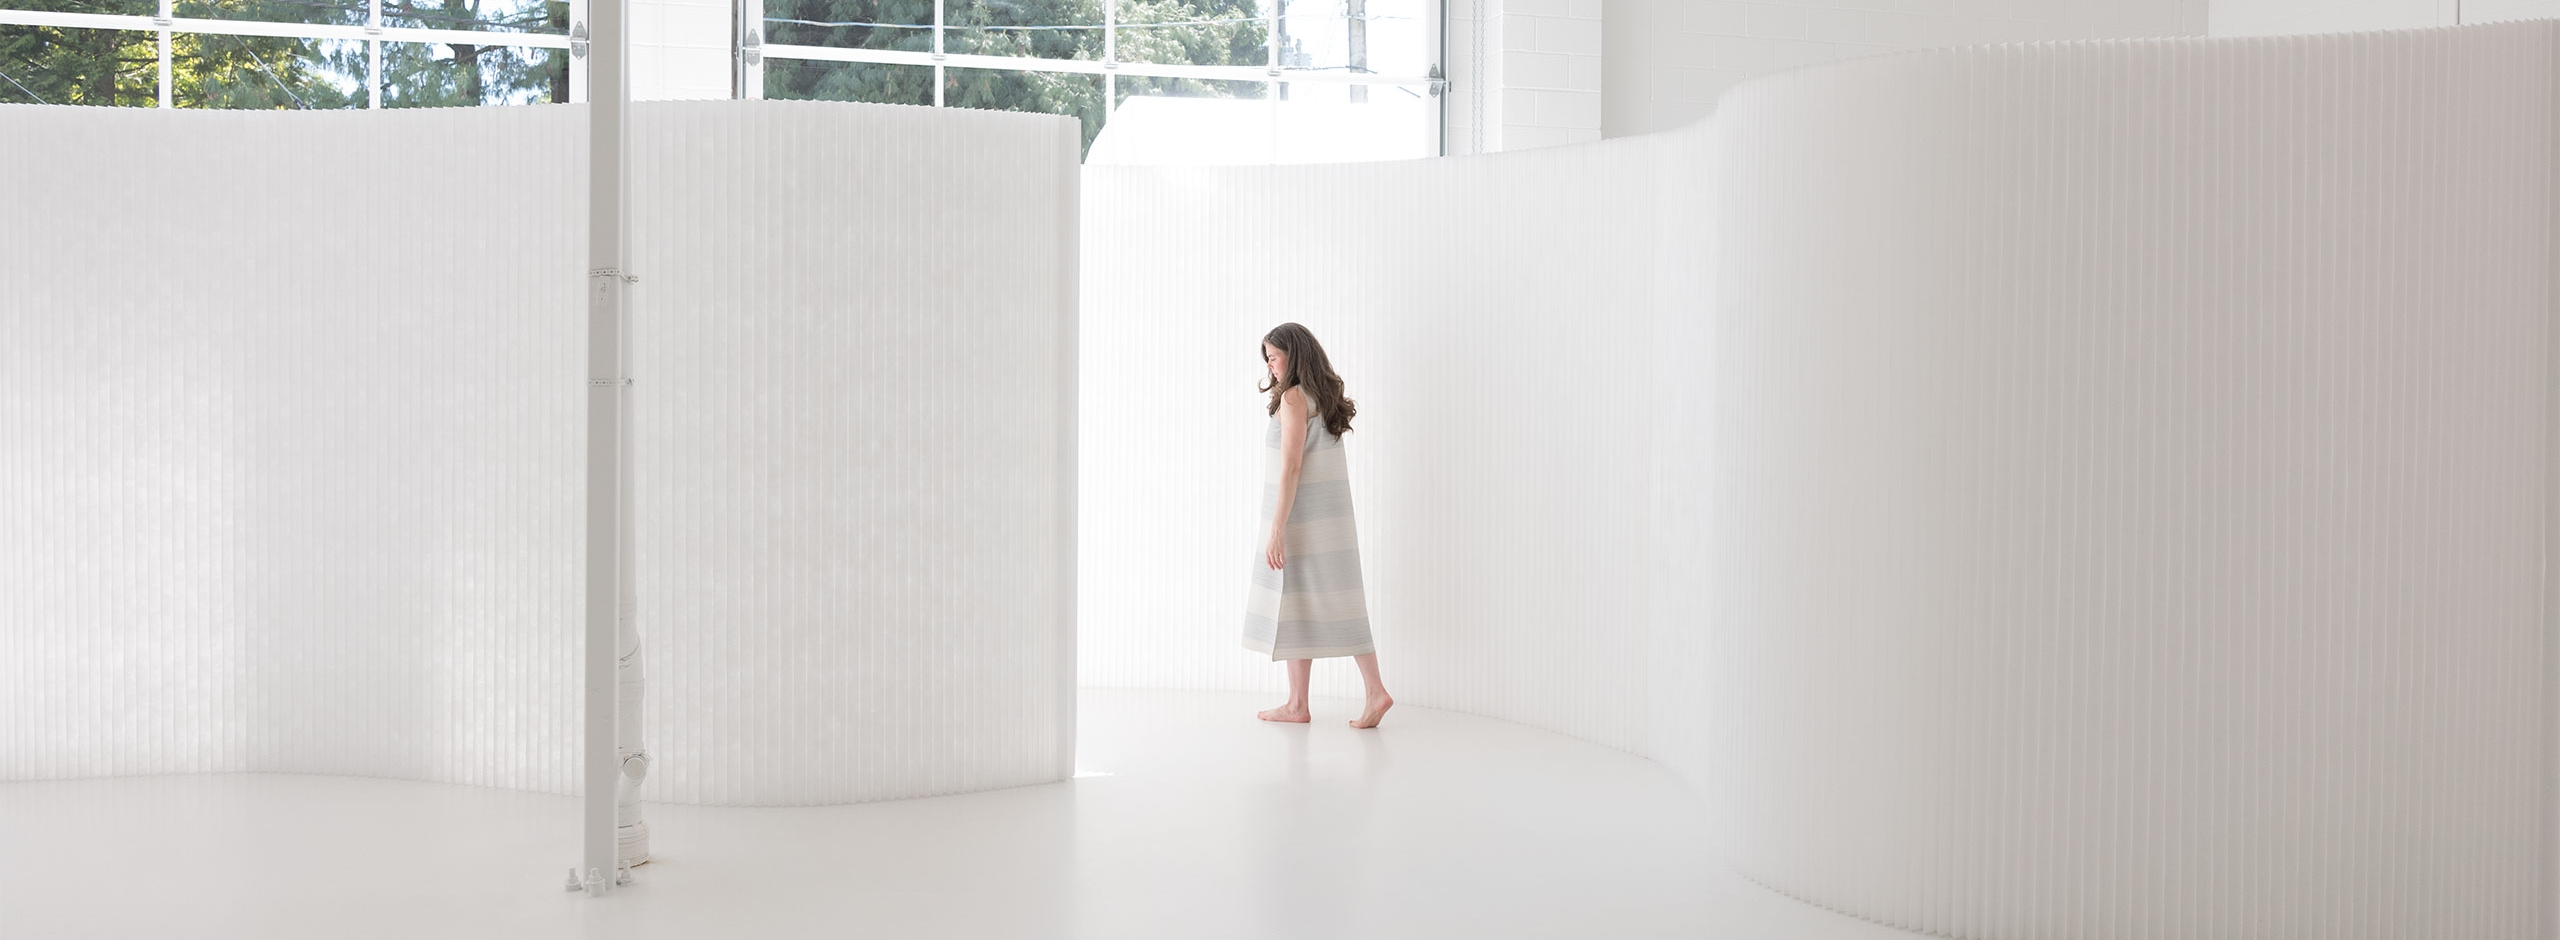 A translucent interior partition, textile softwall is a flexible folding wall that can be adjusted to any shape to create a sculptural backdrop or divide space.